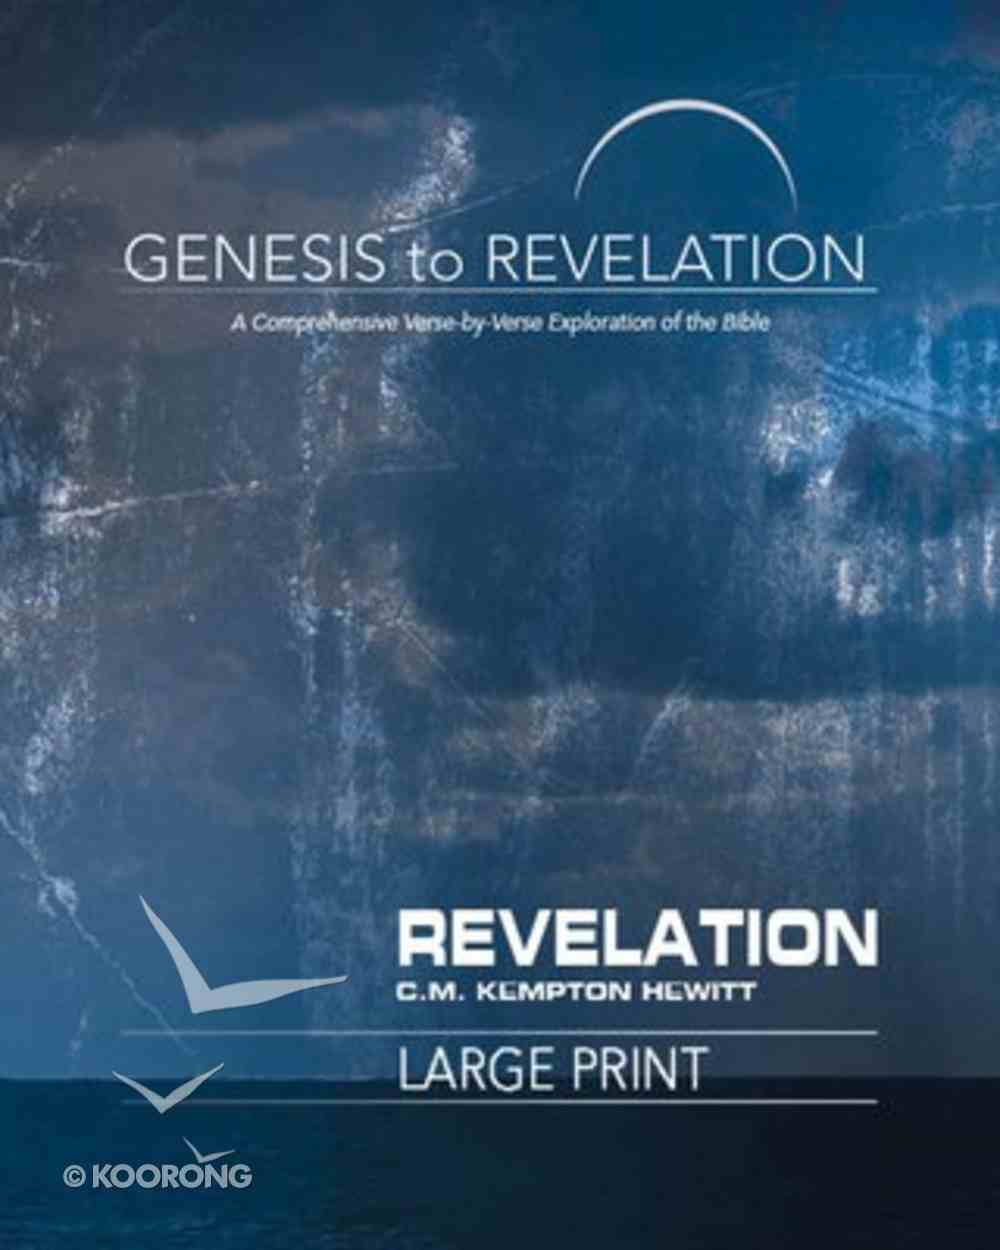 Revelation : A Comprehensive Verse-By-Verse Exploration of the Bible (Participant Book, Large Print) (Genesis To Revelation Series) Paperback